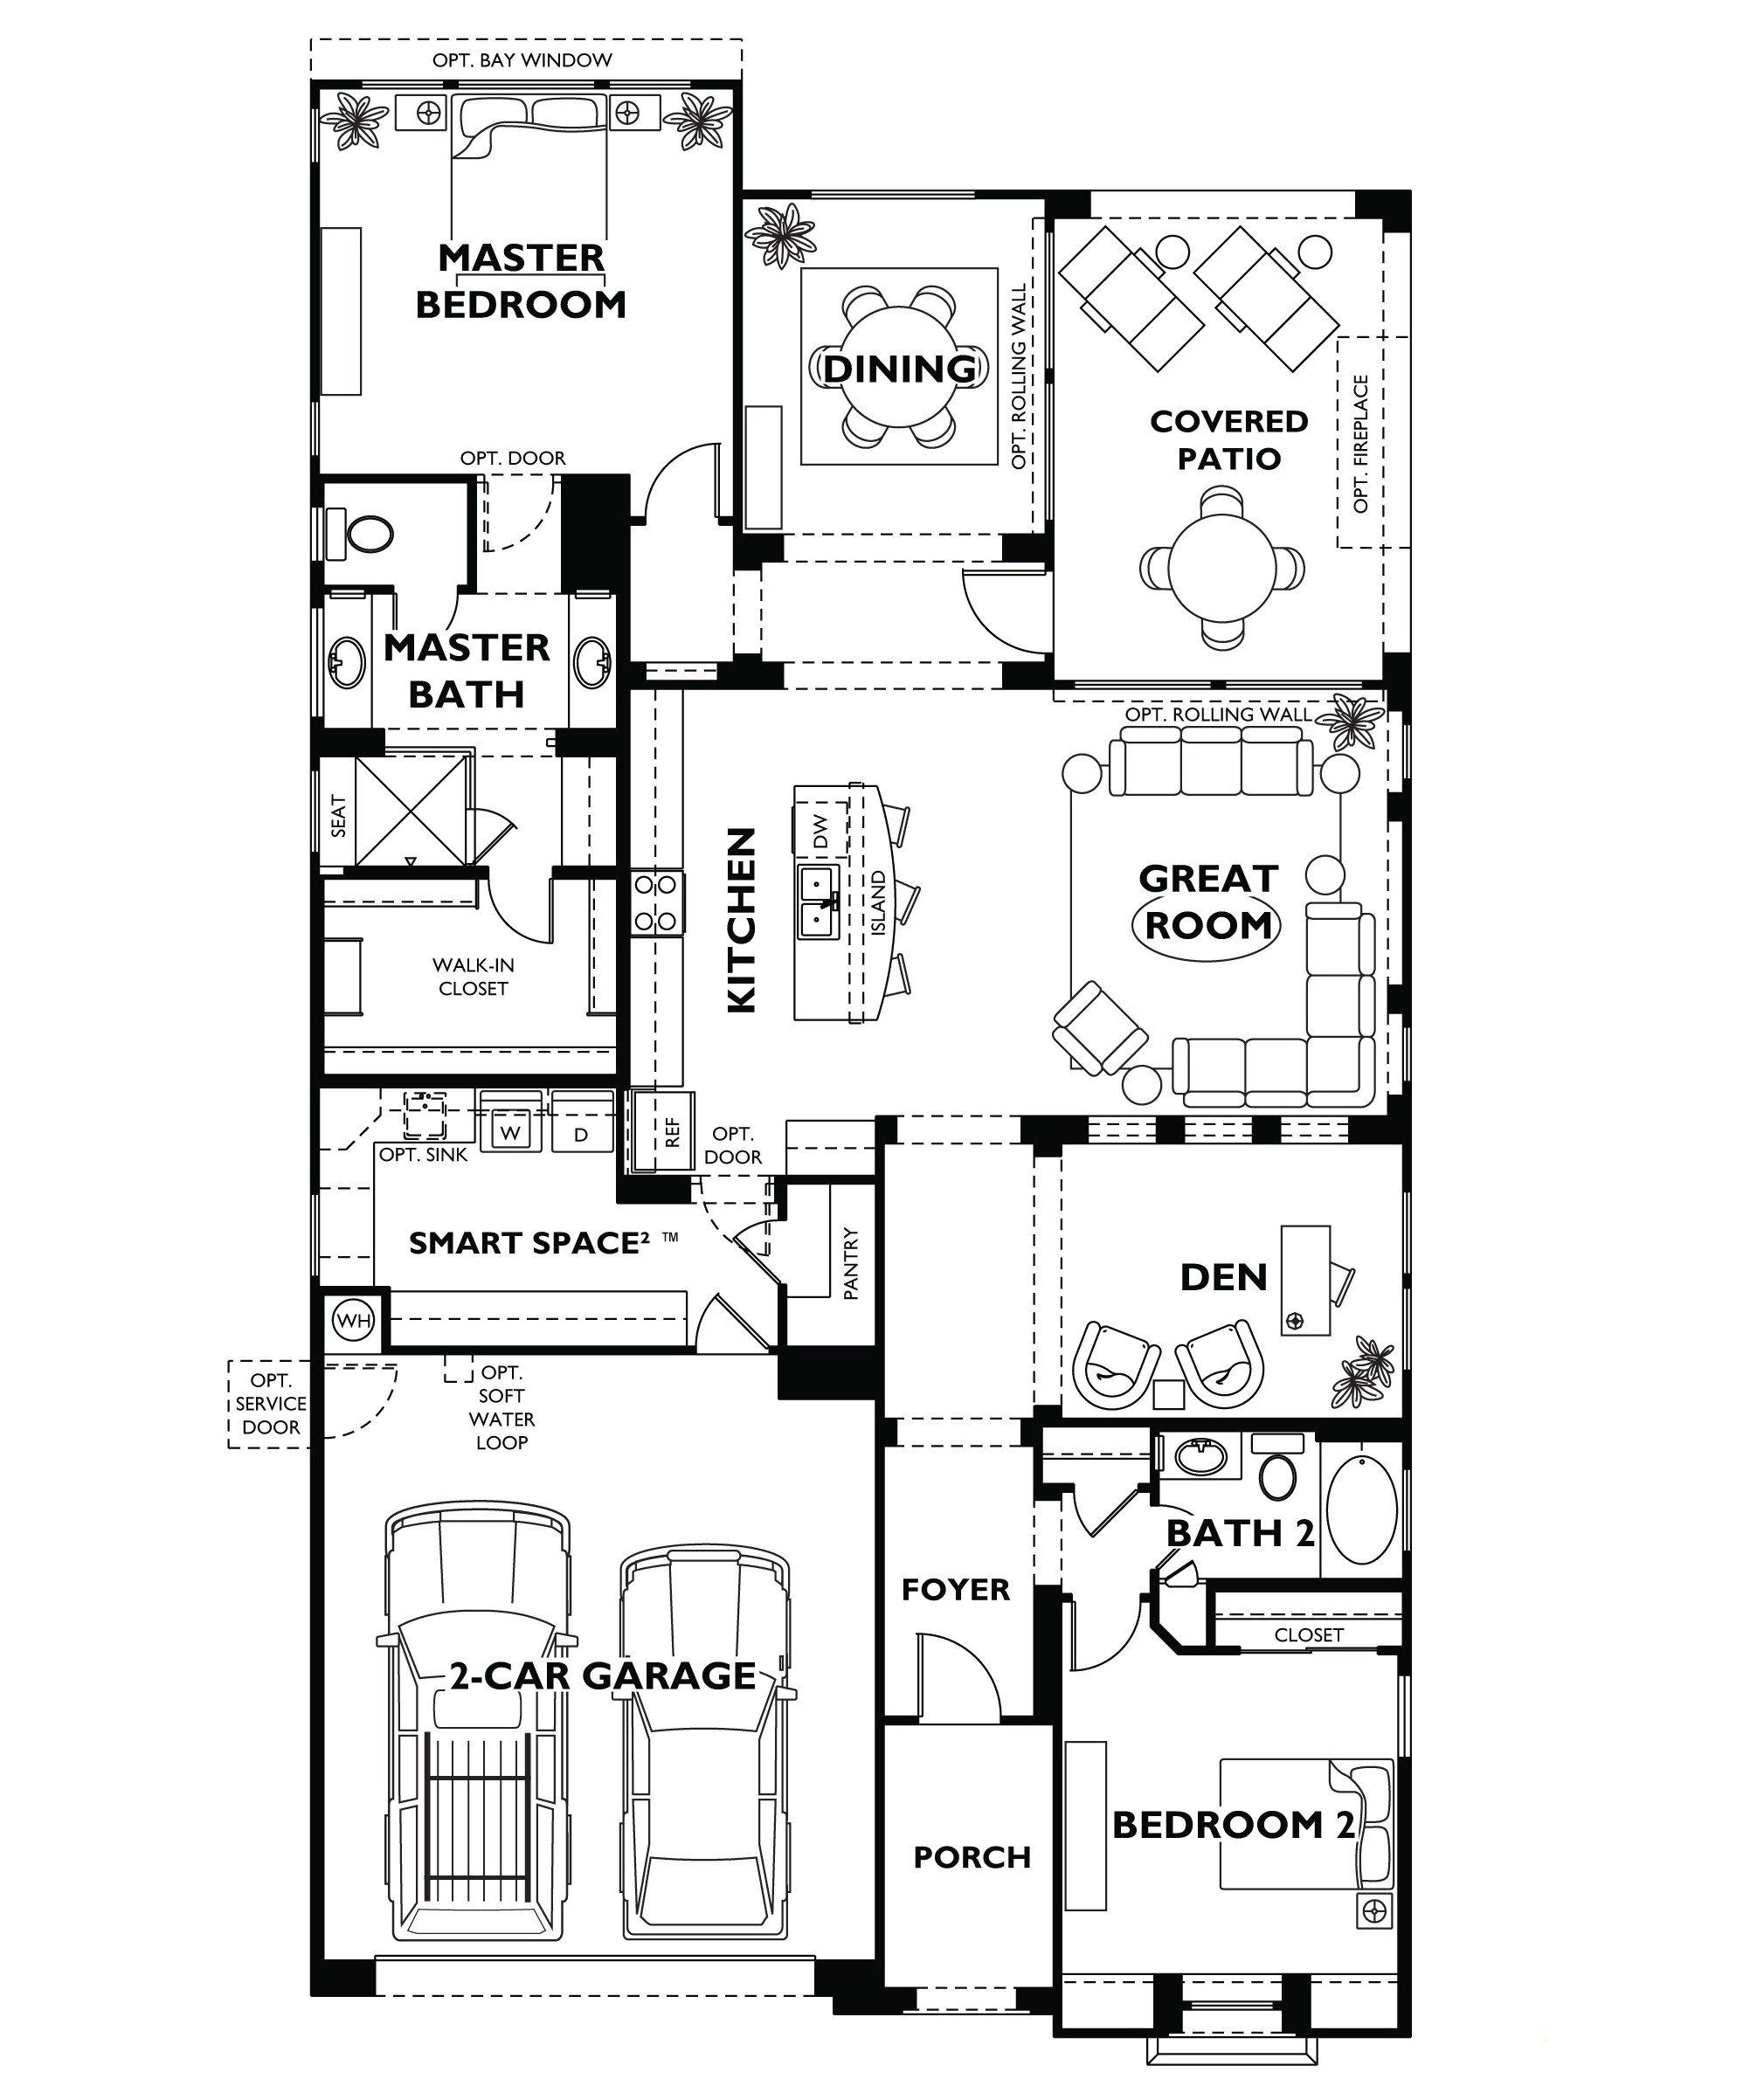 Home Model Plans Trilogy at Vistancia Nice Floor Plan Model Home Shea